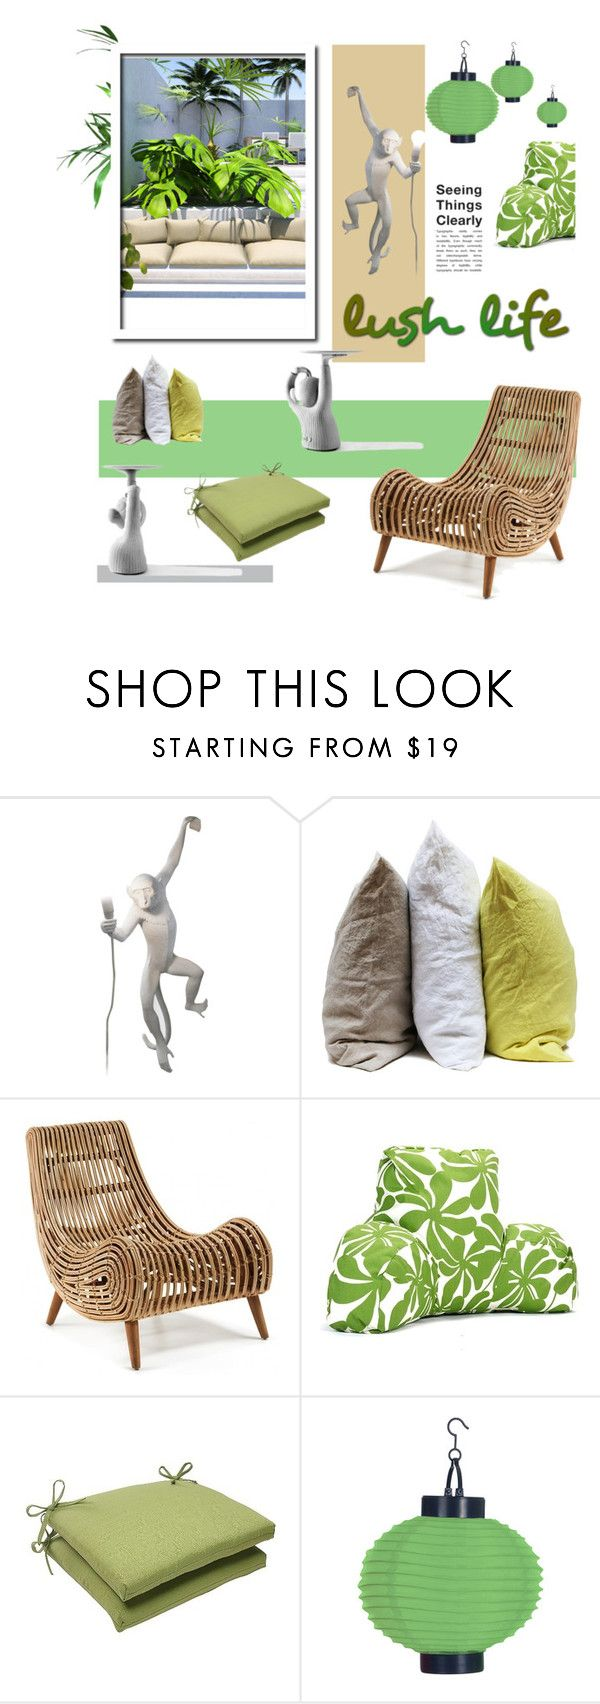 """""""Tropical Concrete Jungle"""" by fl4u ❤ liked on Polyvore featuring interior, interiors, interior design, home, home decor, interior decorating, Seletti, Hawkins, Jaime Hayon and Majestic Home Goods"""